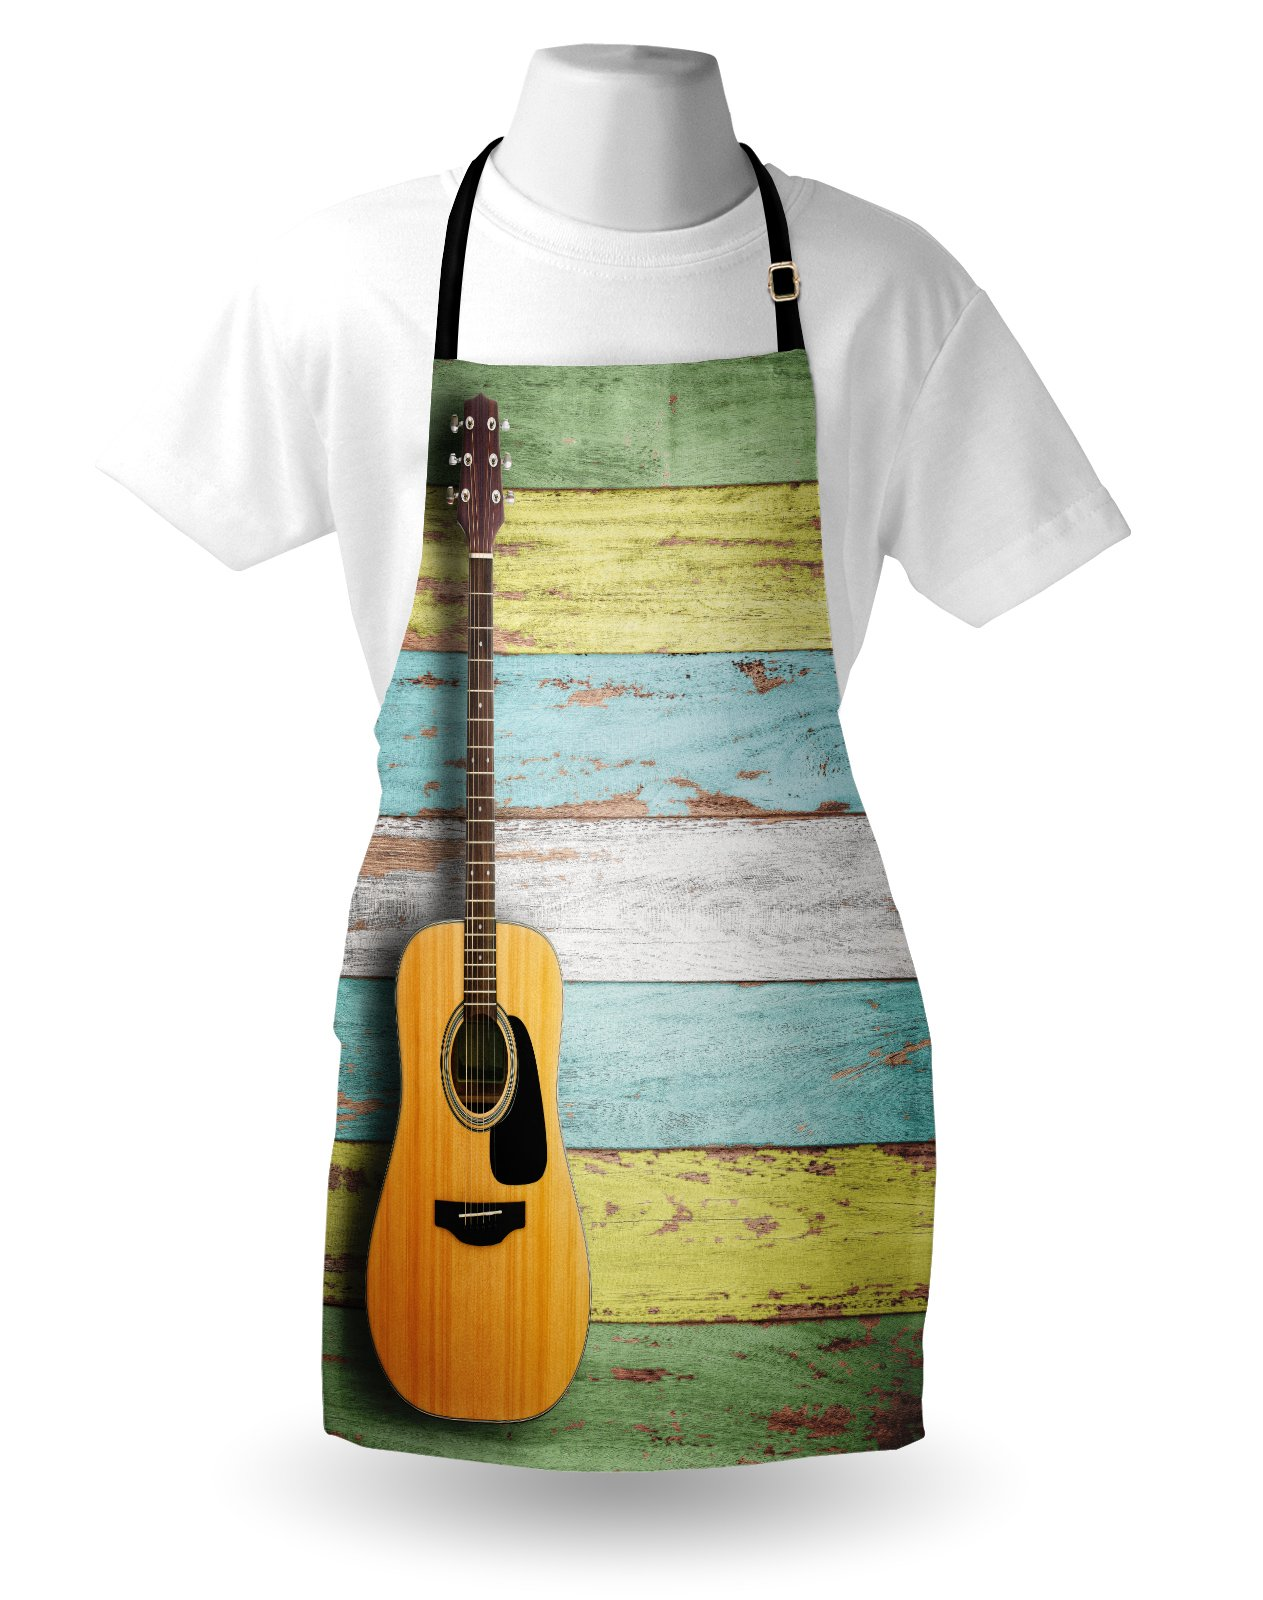 Ambesonne Music Apron, Acoustic Guitar on Colorful Painted Aged Wooden Planks Rustic Country Design Print, Unisex Kitchen Bib Apron with Adjustable Neck for Cooking Baking Gardening, Multicolor by Ambesonne (Image #3)